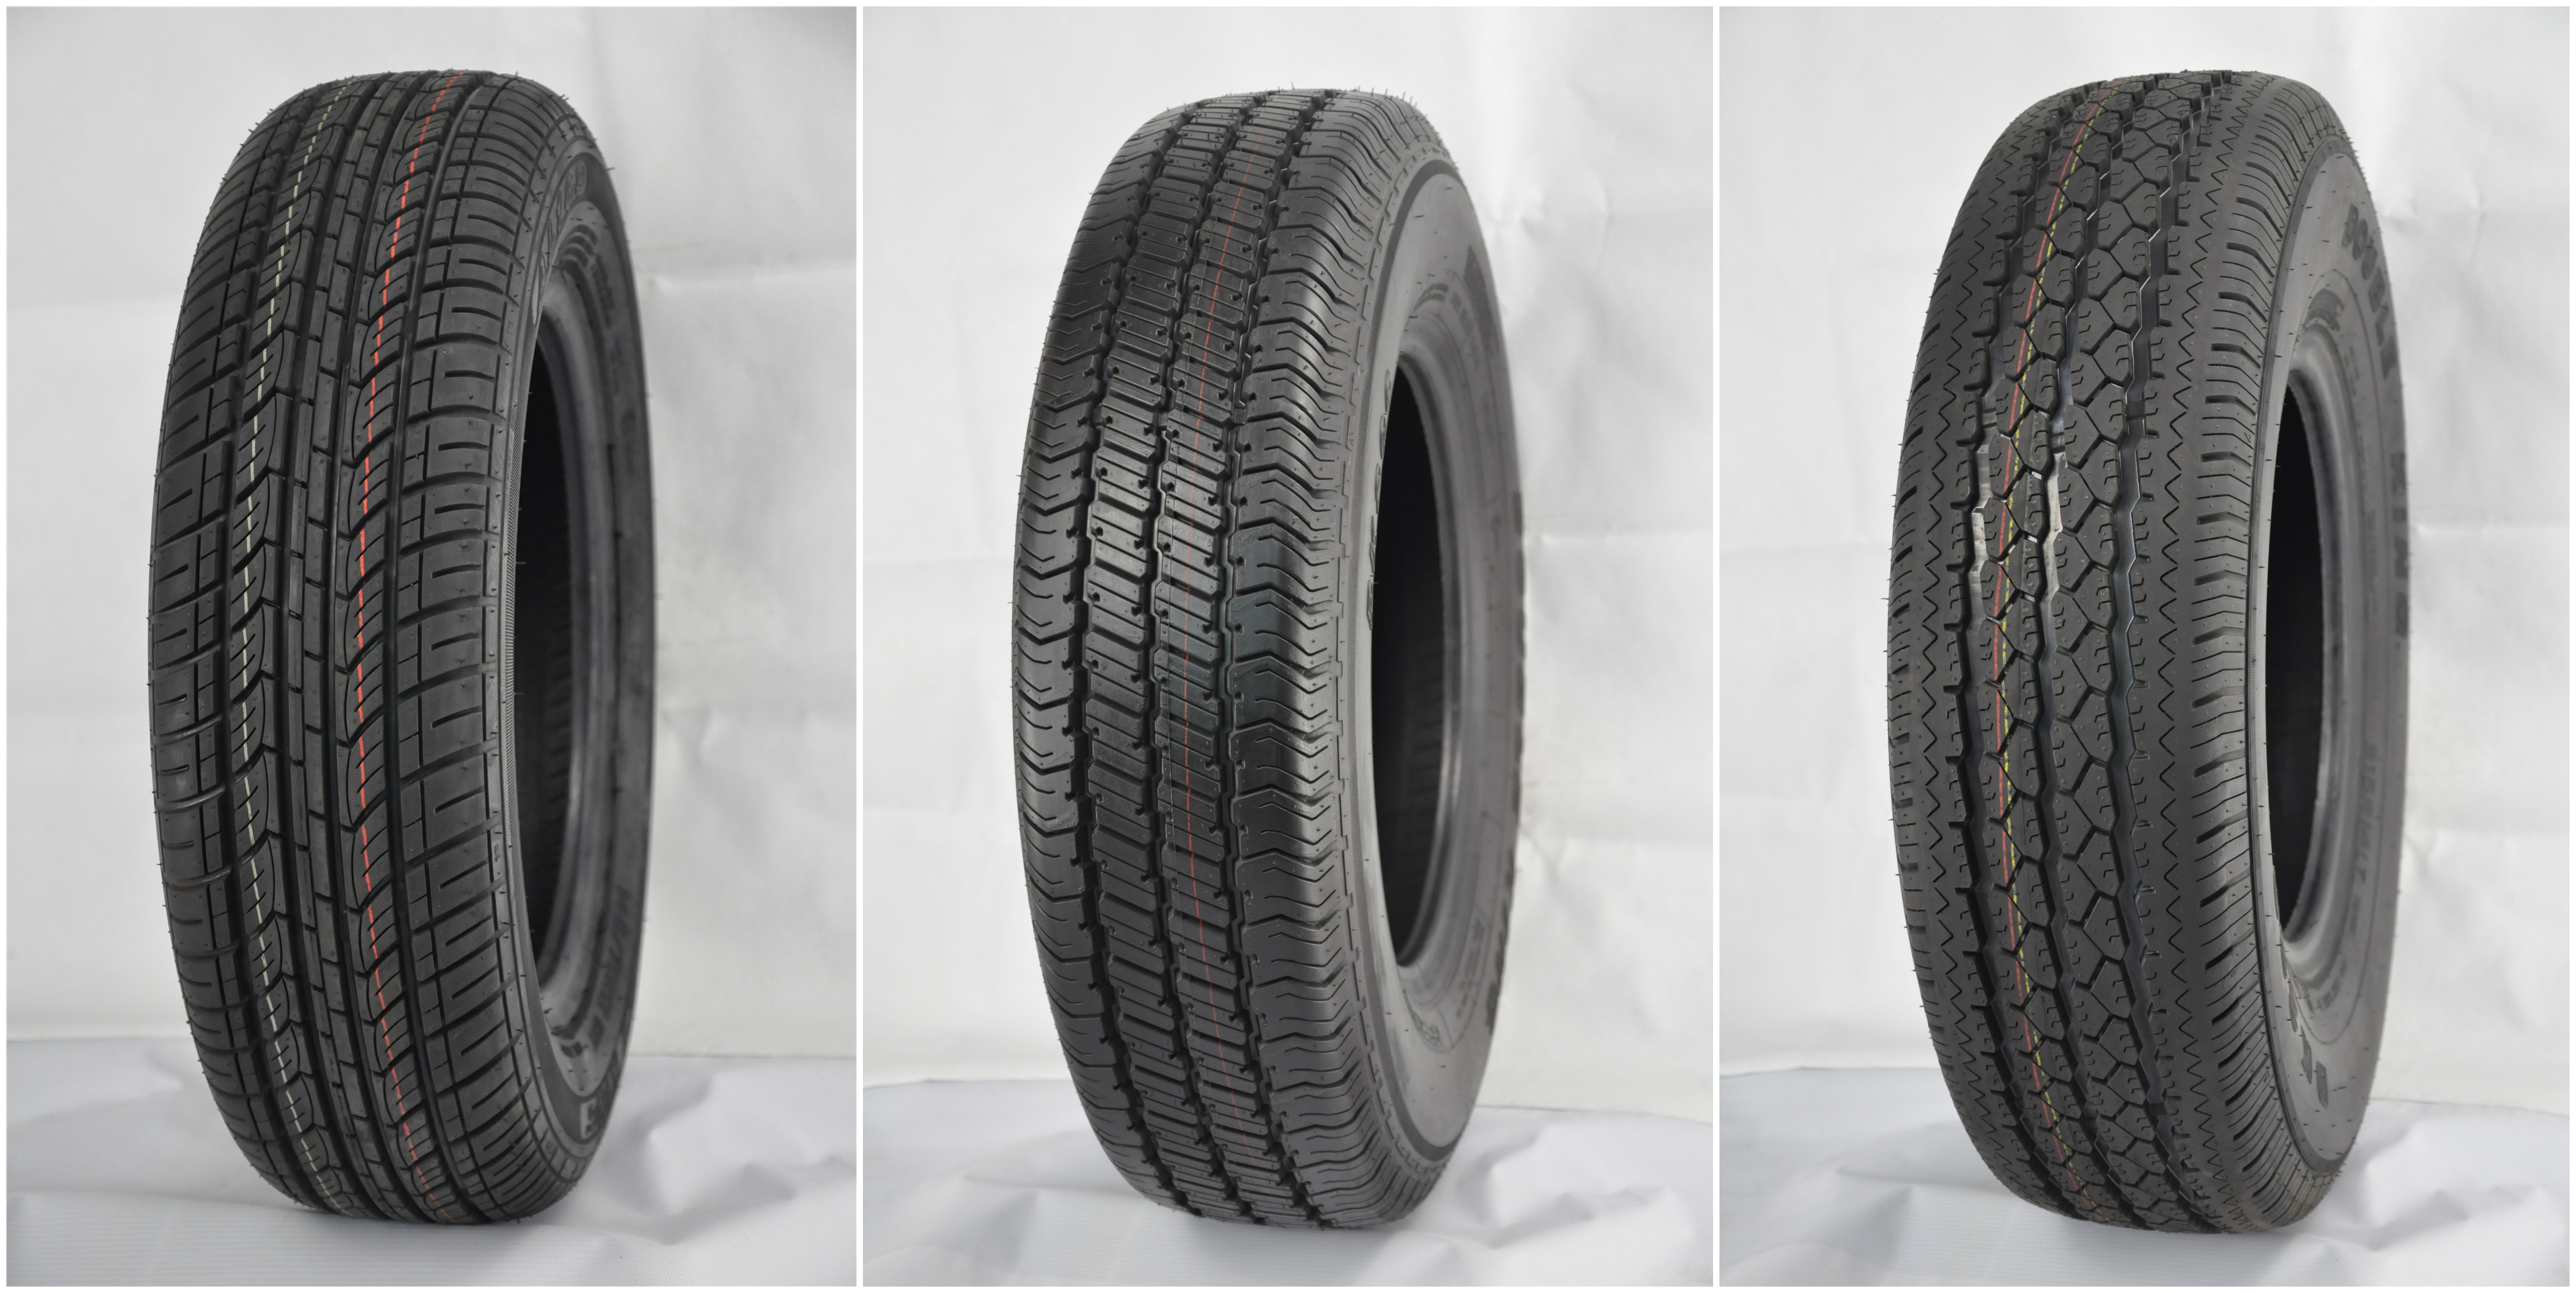 Boto/Winda Brand Car Tyre 185/70r13 Tires with High Quality and Competitive Price